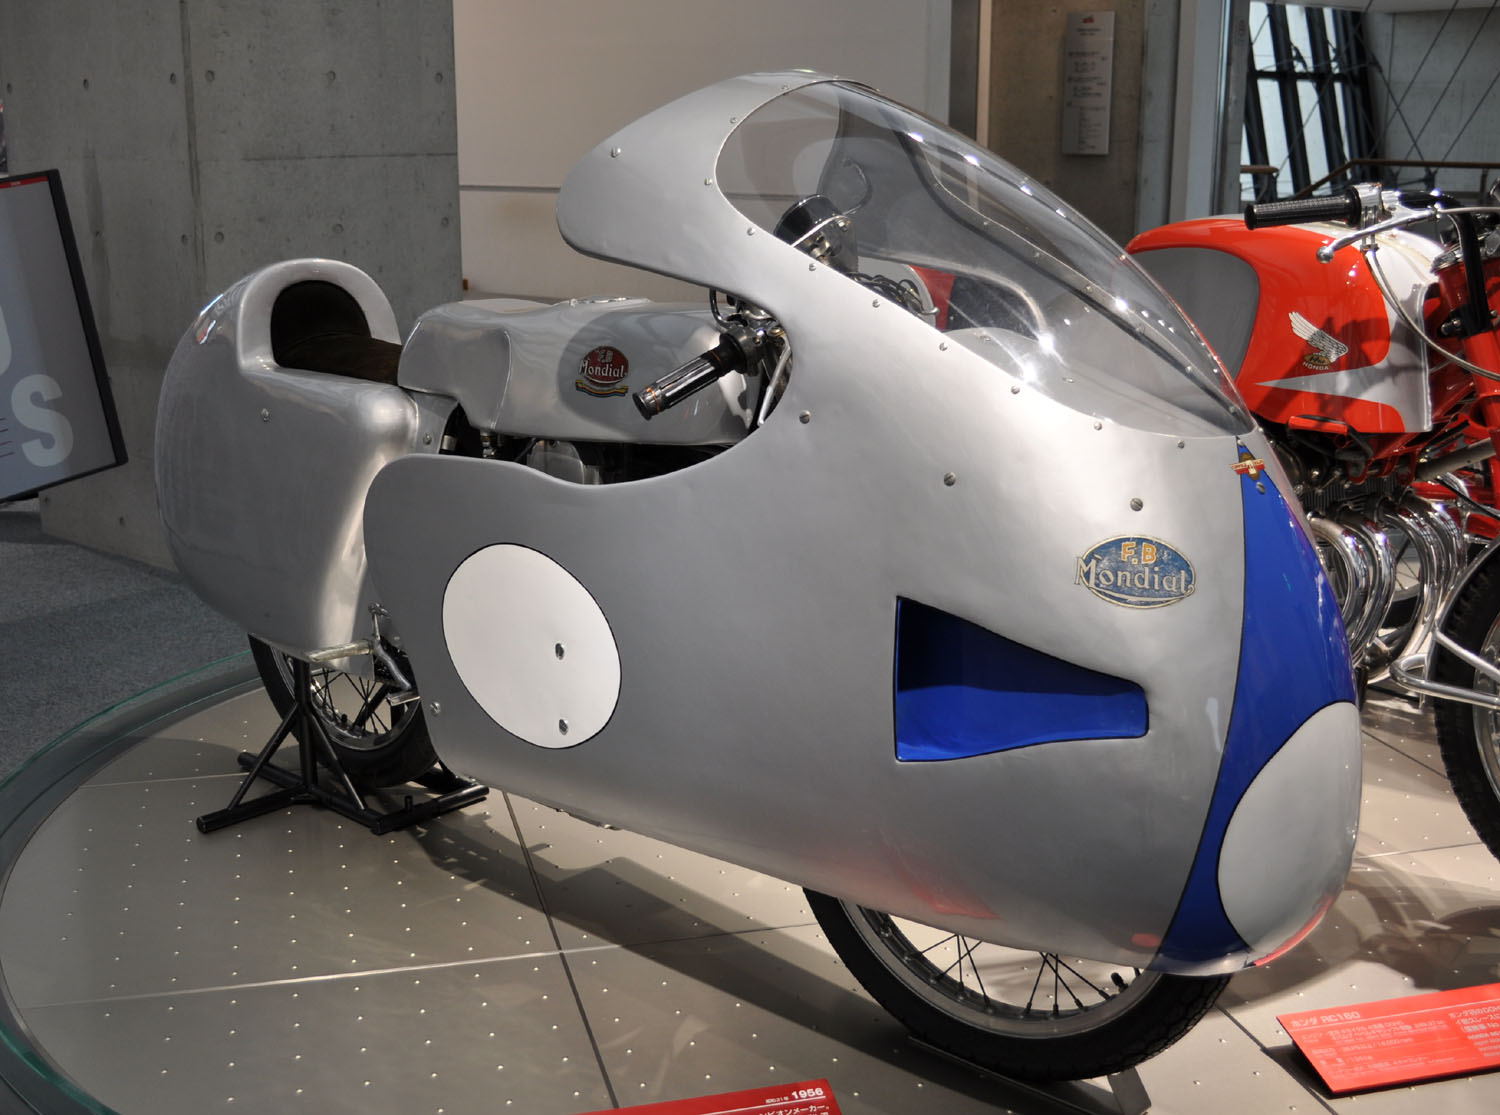 Mondial 125 GP in the Honda Collection Hall, Motegi